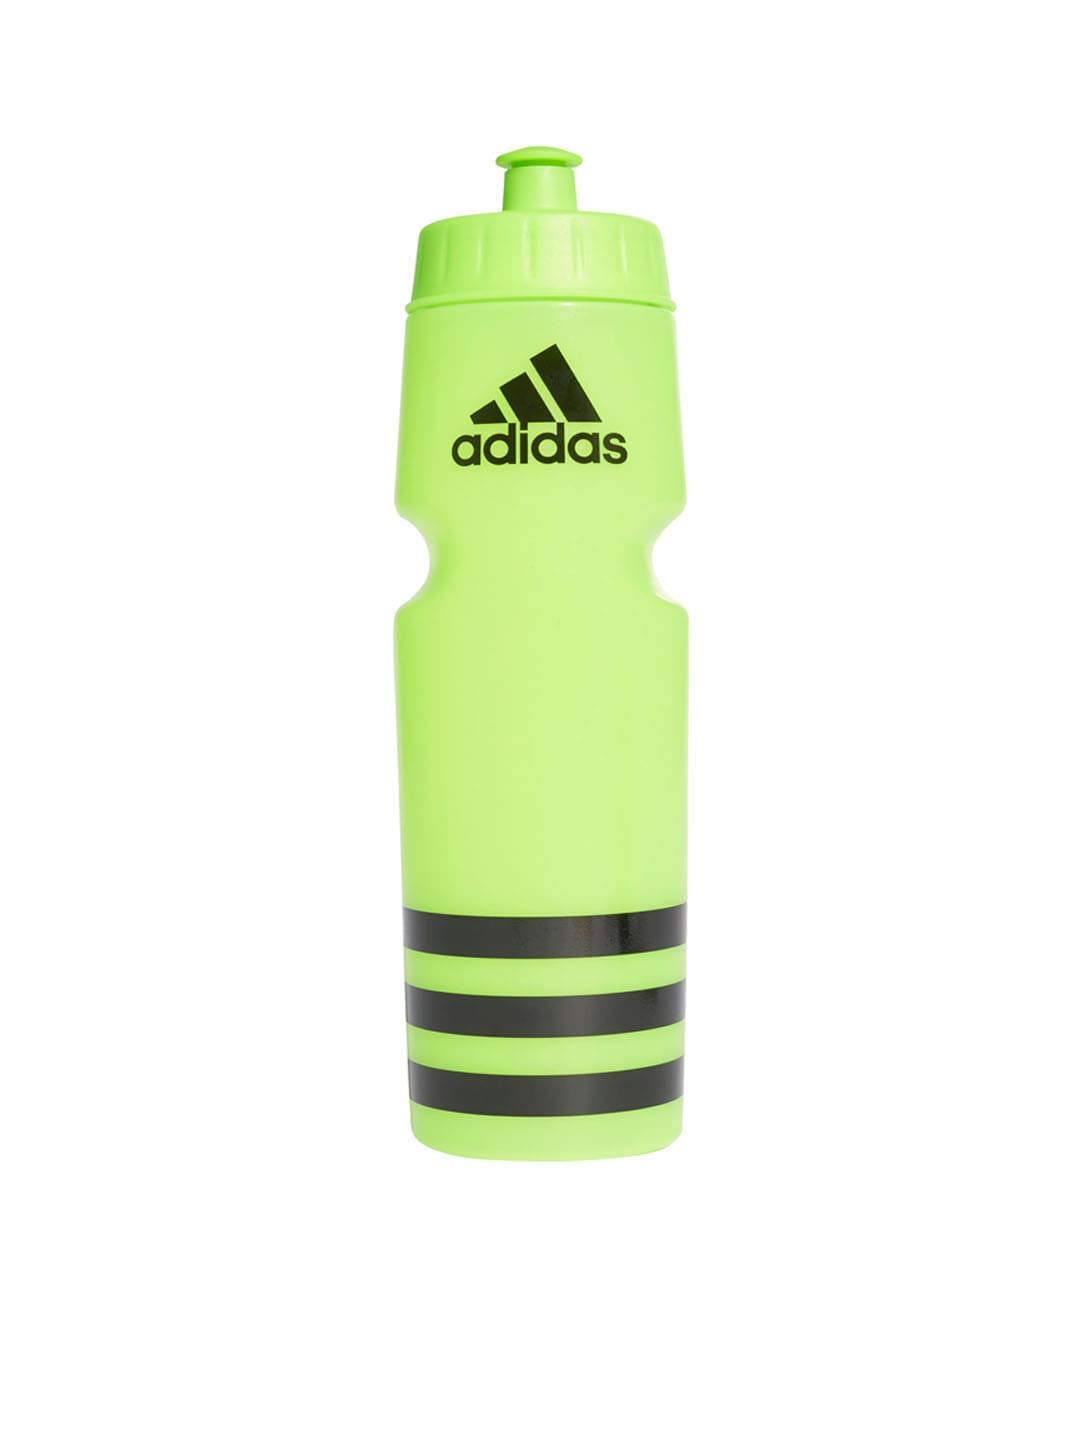 5659d5669f639 Adidas Sipper Bottles - Buy Adidas Sipper Bottles online in India